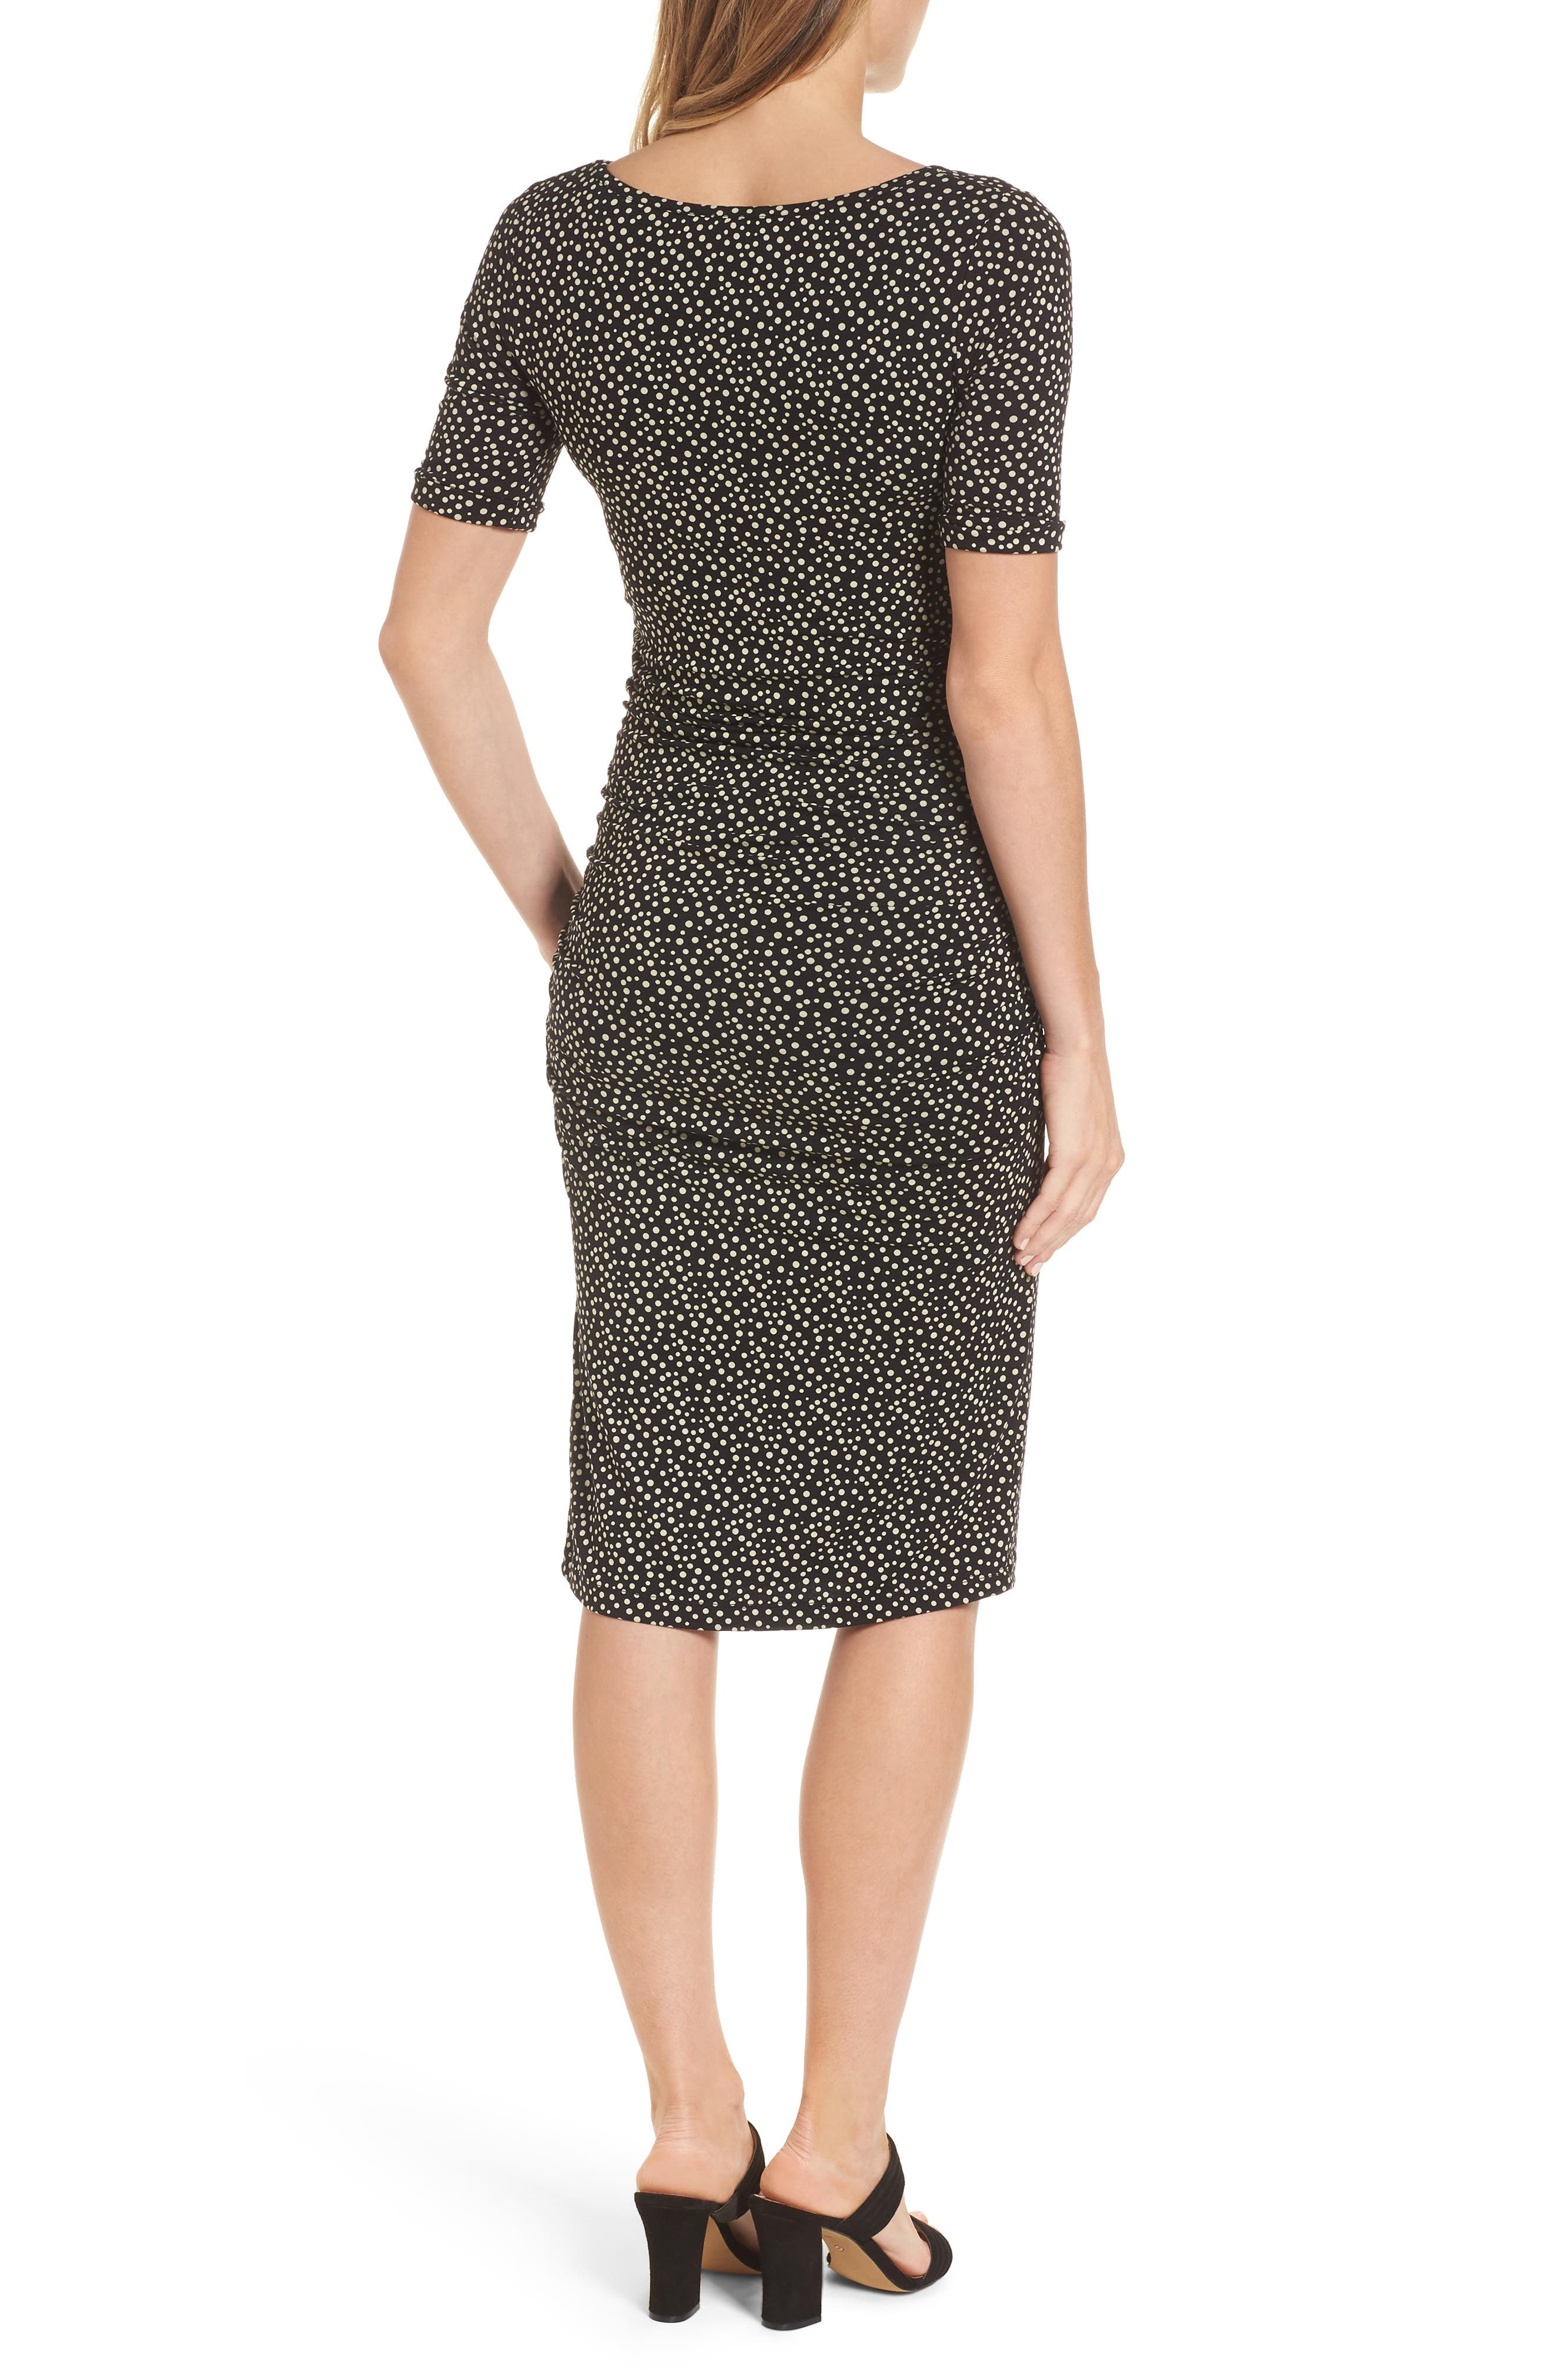 Danni Ruched Maternity Dress,                             Alternate thumbnail 2, color,                             POLKA PRINT